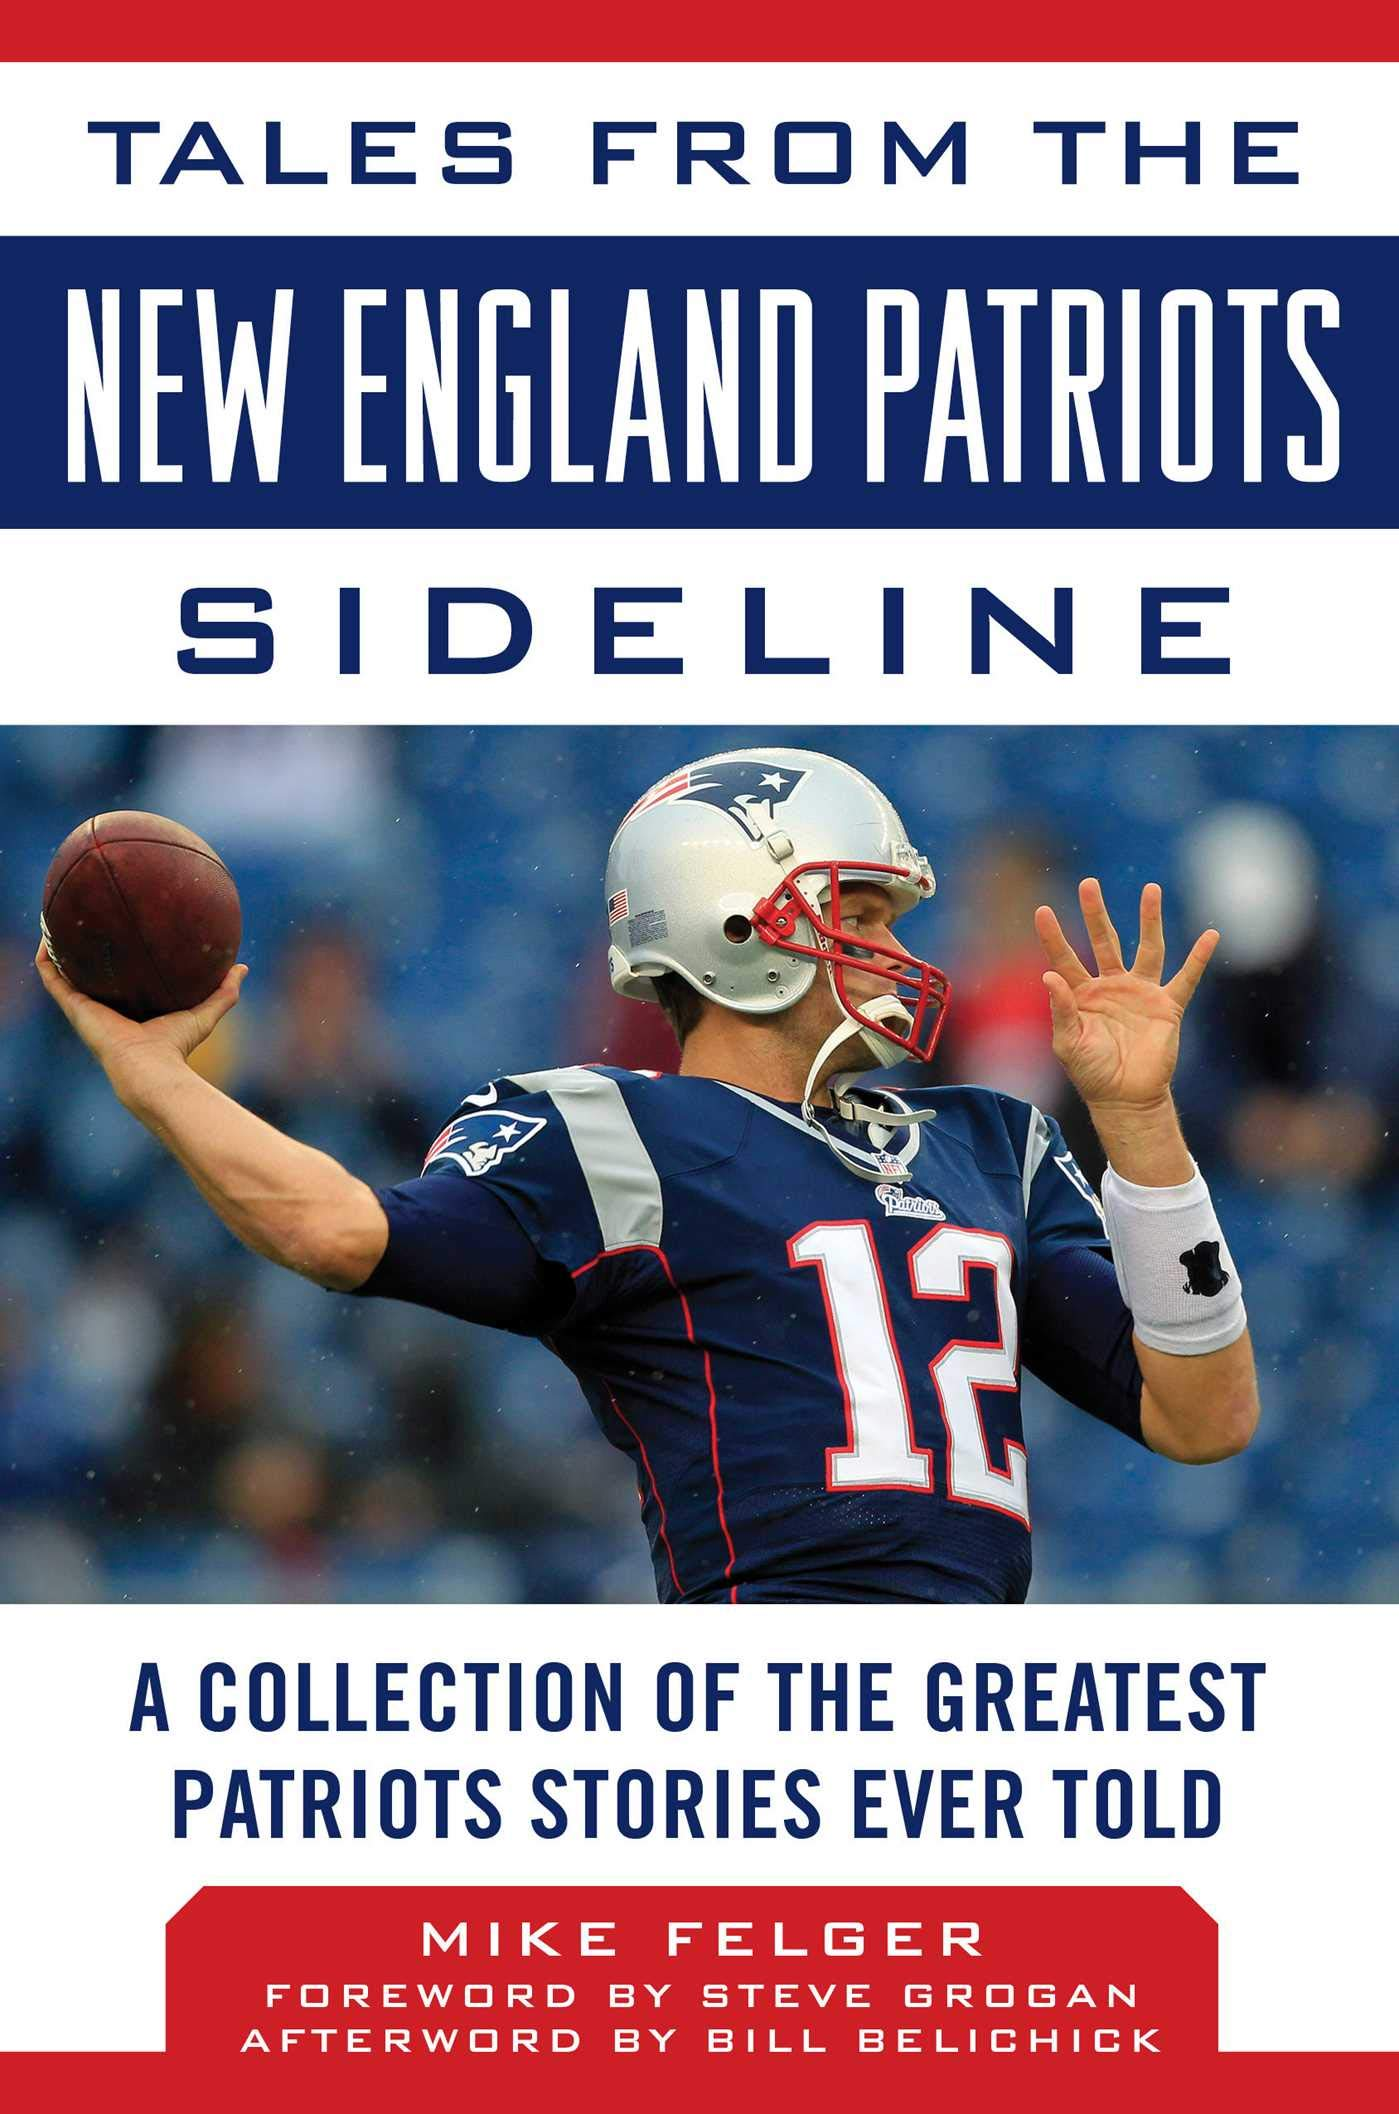 cc5ee87f505a94 Tales from the New England Patriots Sideline: A Collection of the Greatest  Patriots Stories Ever Told Hardcover – 19 Oct 2017